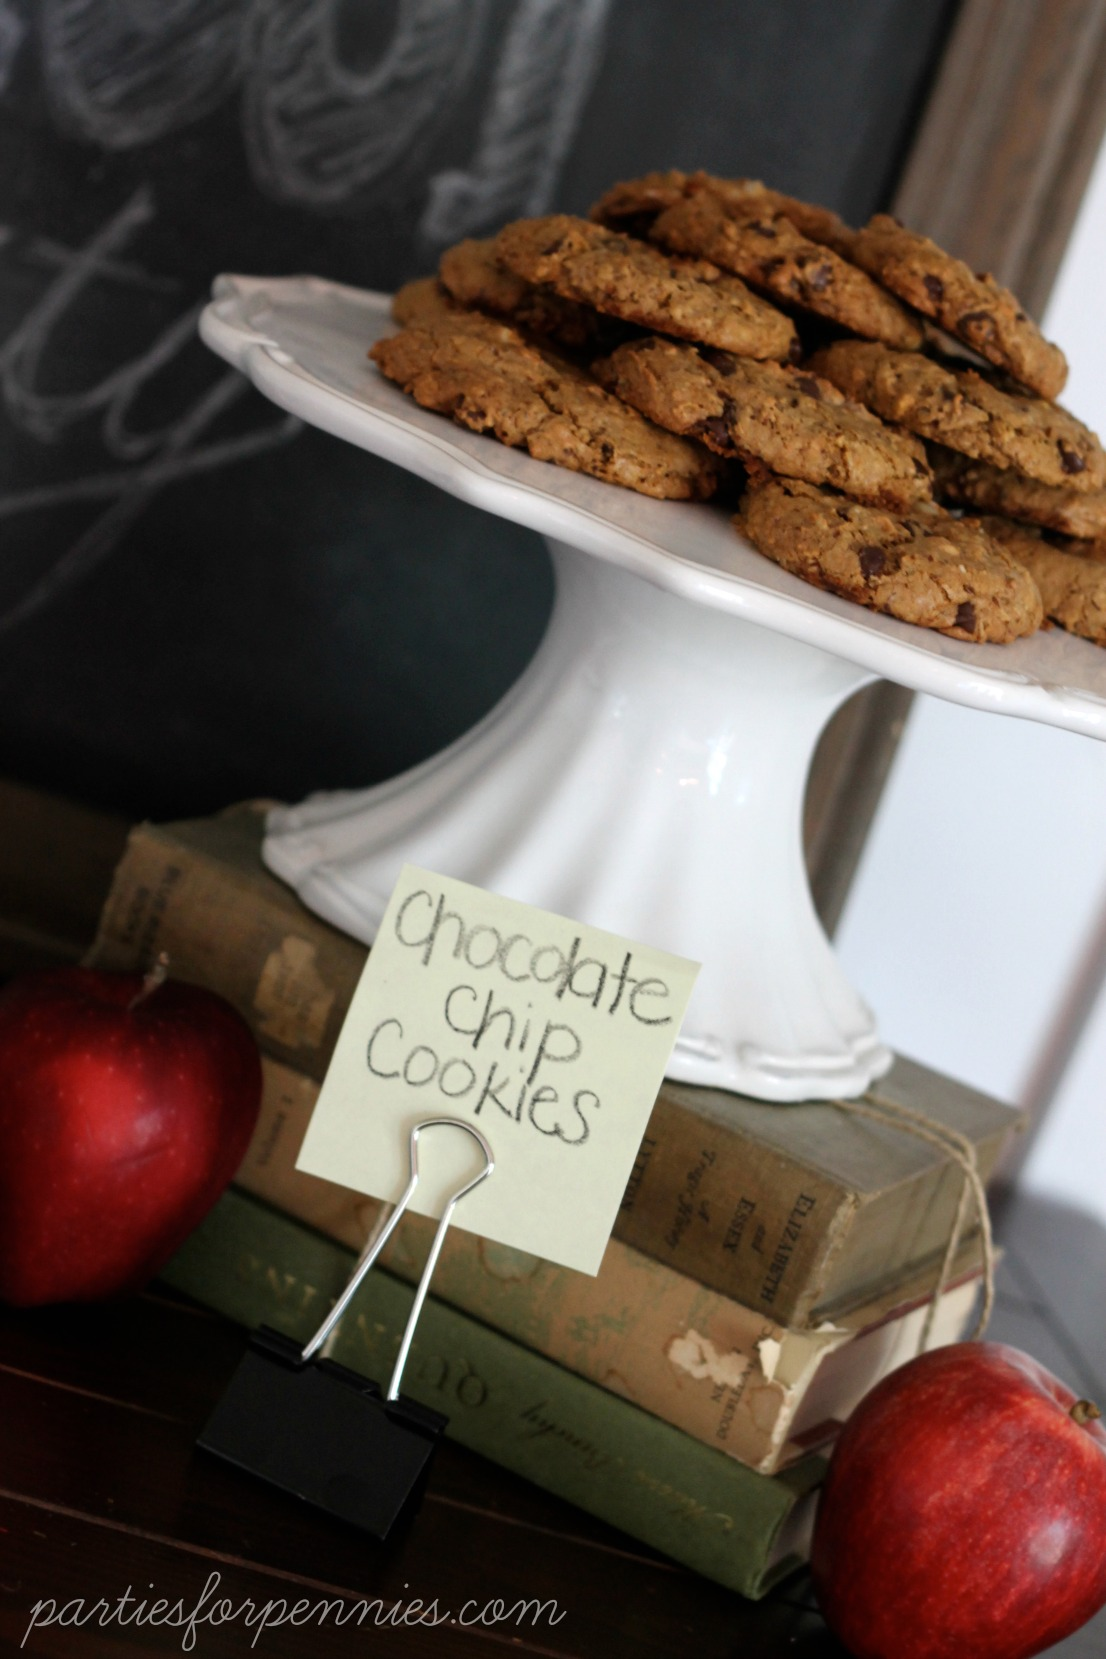 Back to School Party - chocolate chip cookies by PartiesforPennies.com